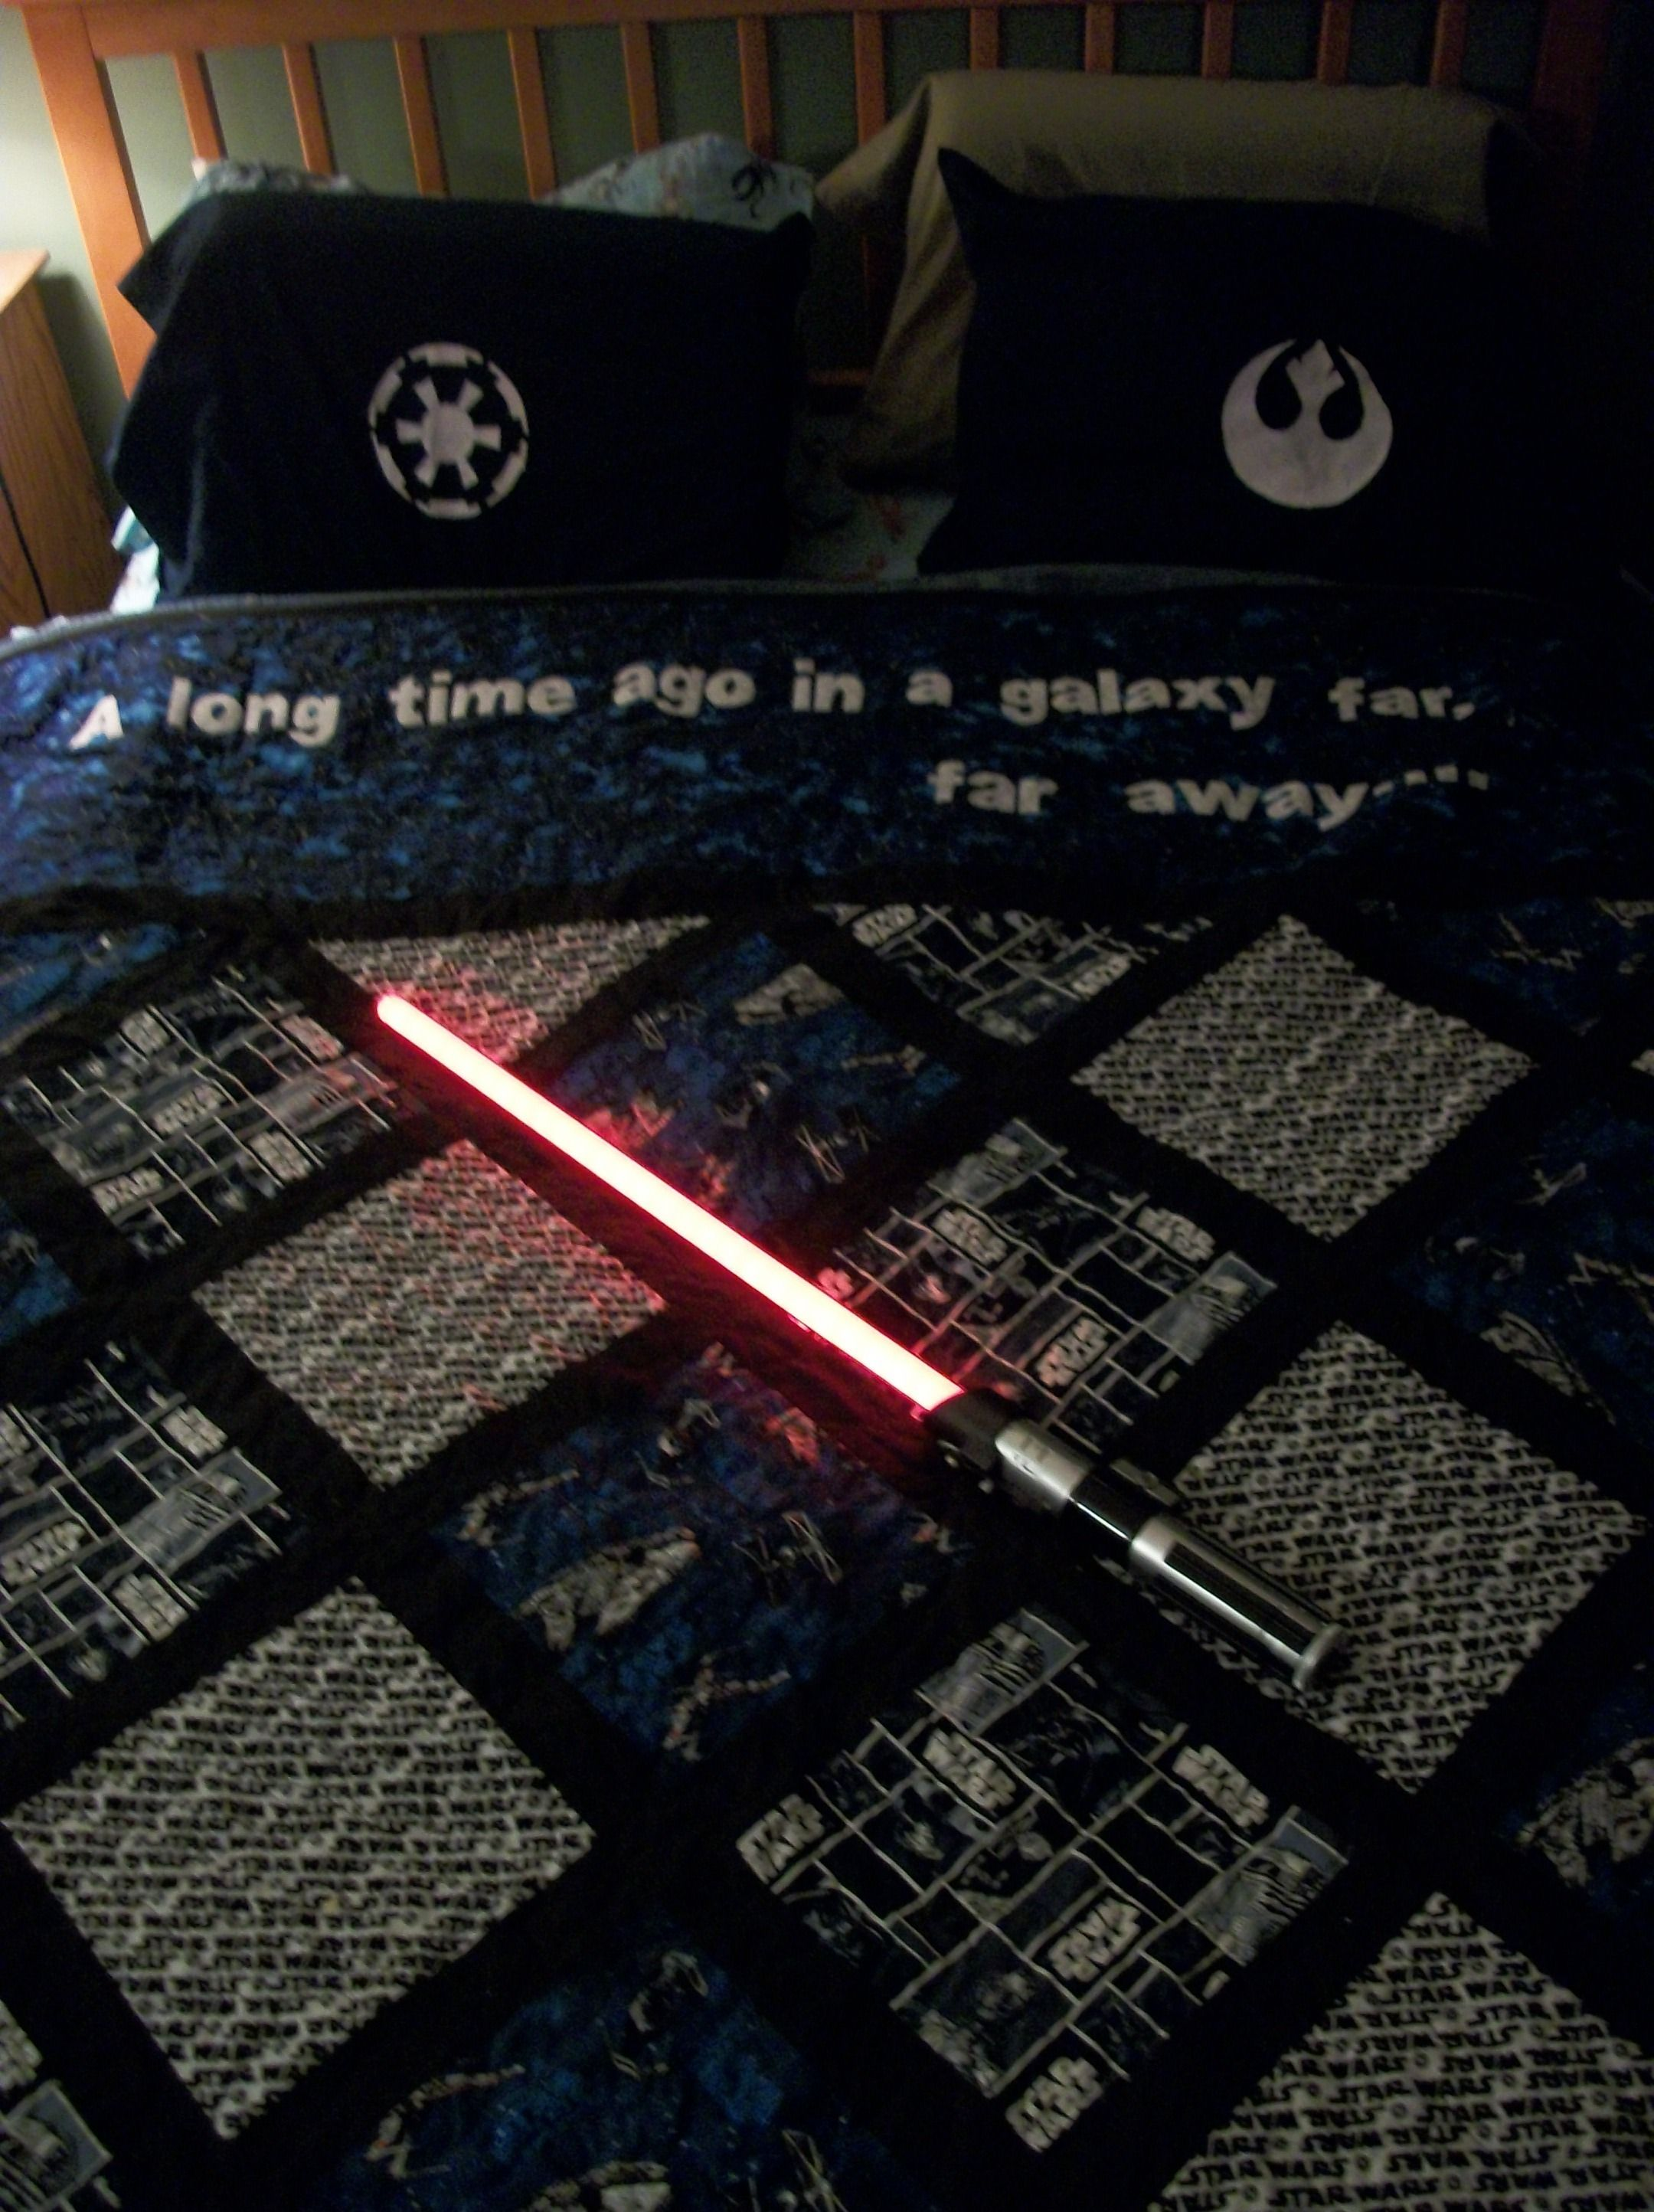 The star wars quilt I designed/made for my hubs for his birthday! (And the freezer paper stencil pillowcases! & The star wars quilt I designed/made for my hubs for his birthday ... pillowsntoast.com